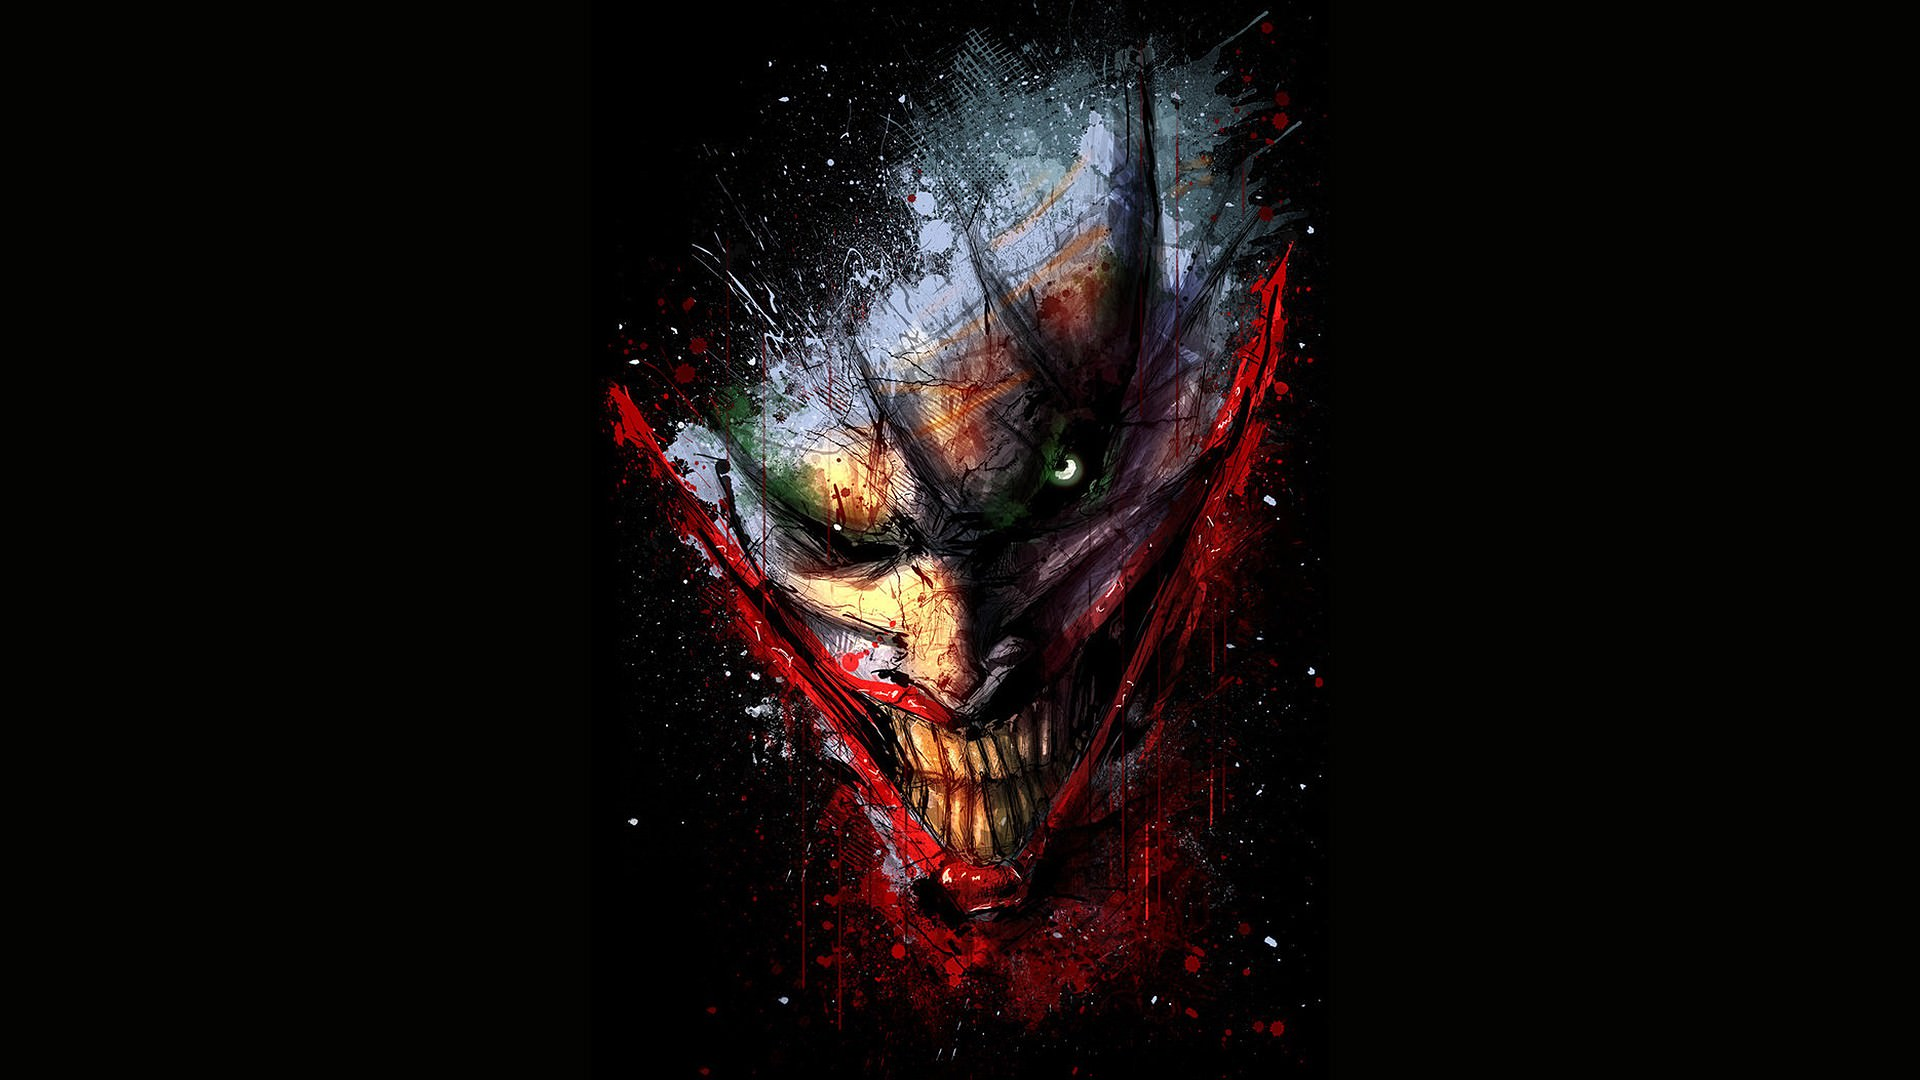 DC-Comics-The-Joker-wallpaper-wp3604628